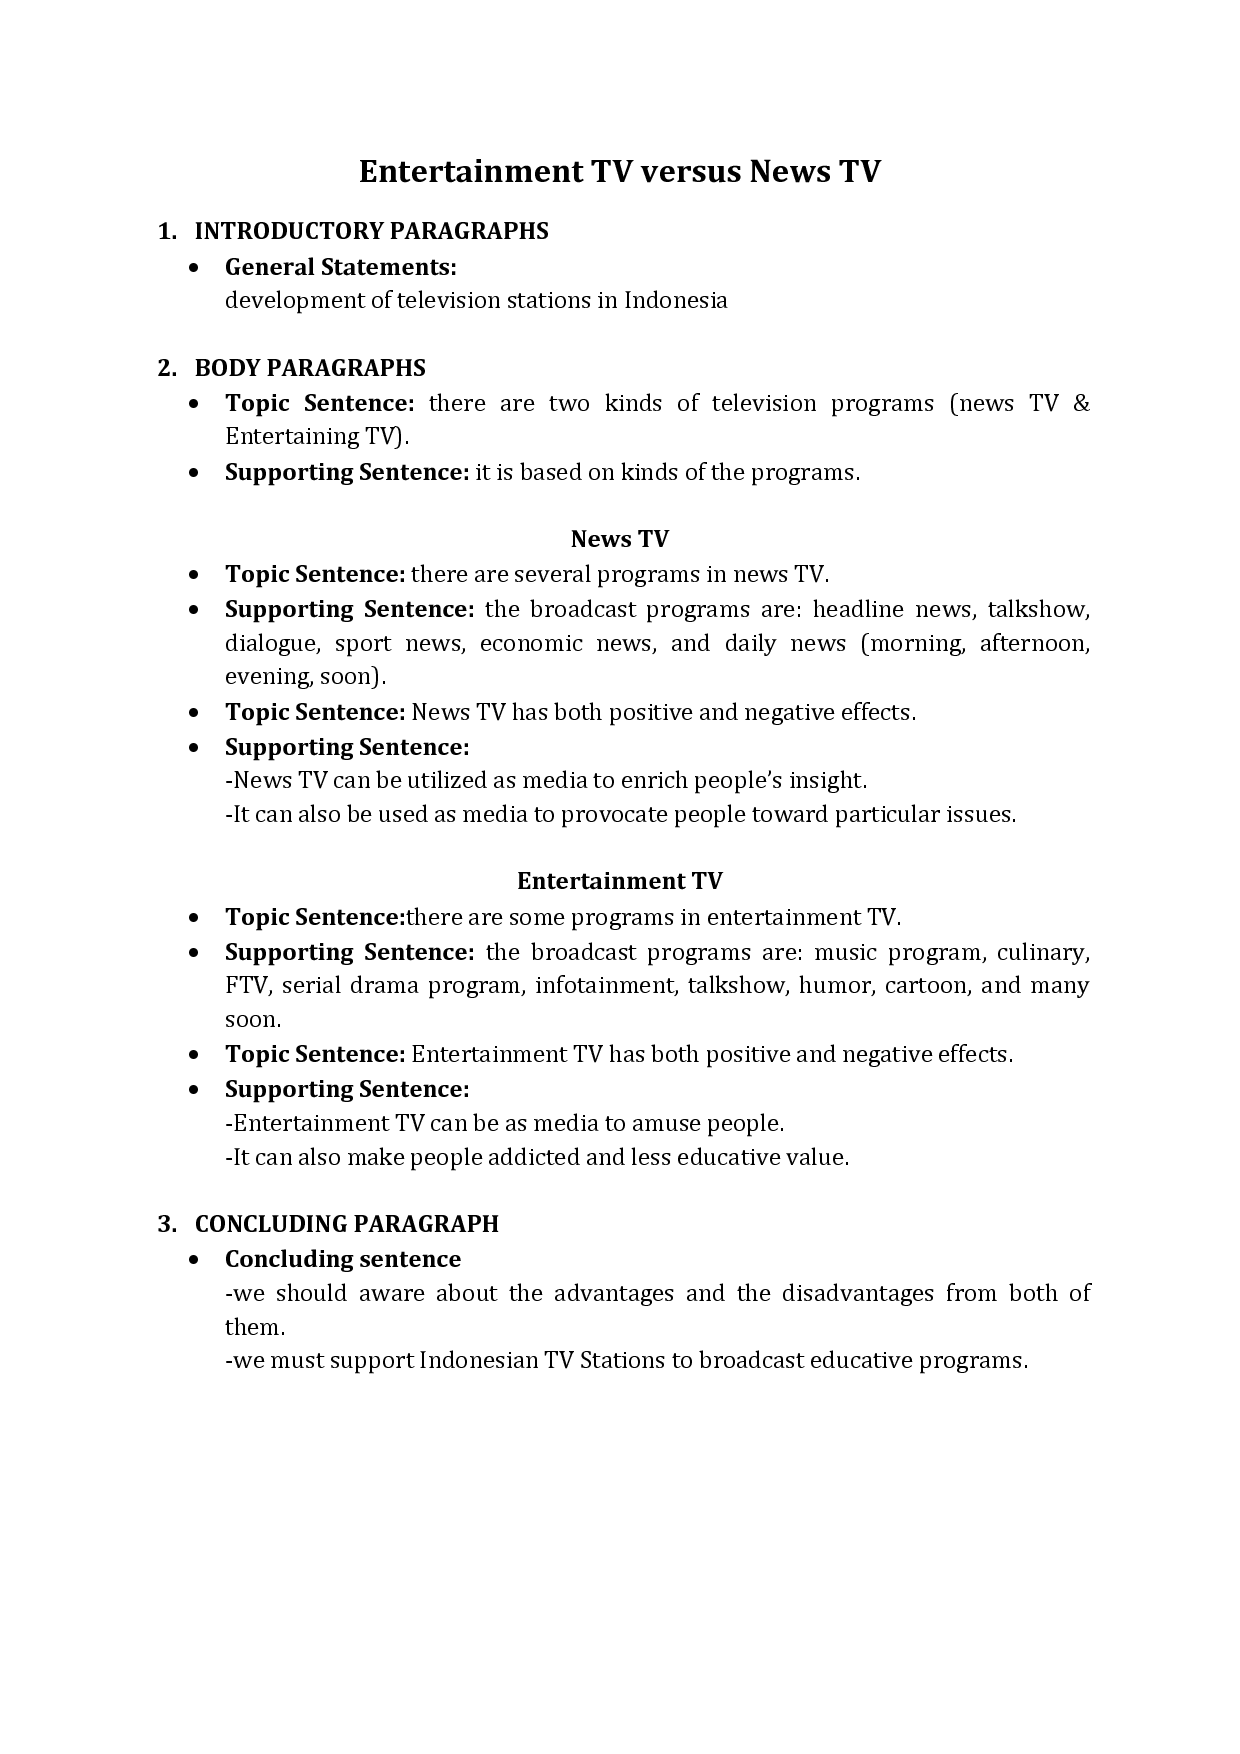 005 Fbunmxinib How To Write An Essay Outline Excellent For University A Research Paper Mla Format Pdf Full